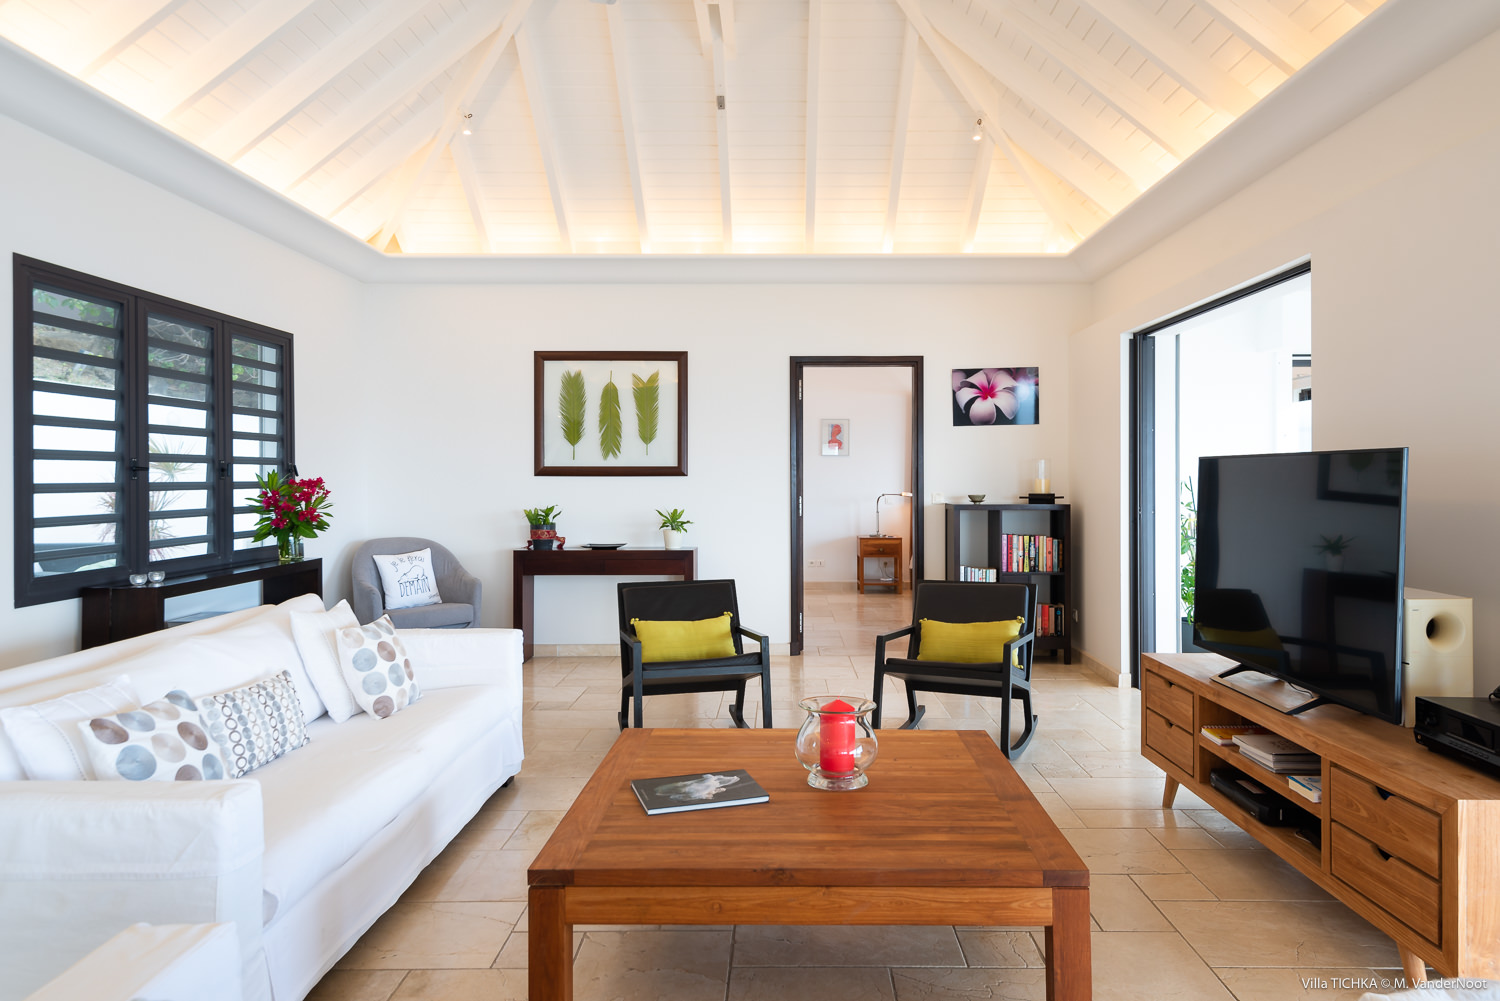 Villa Tichka - Oceanfront Villa for Rent St Barth Ideal for Two Couples - Main Area